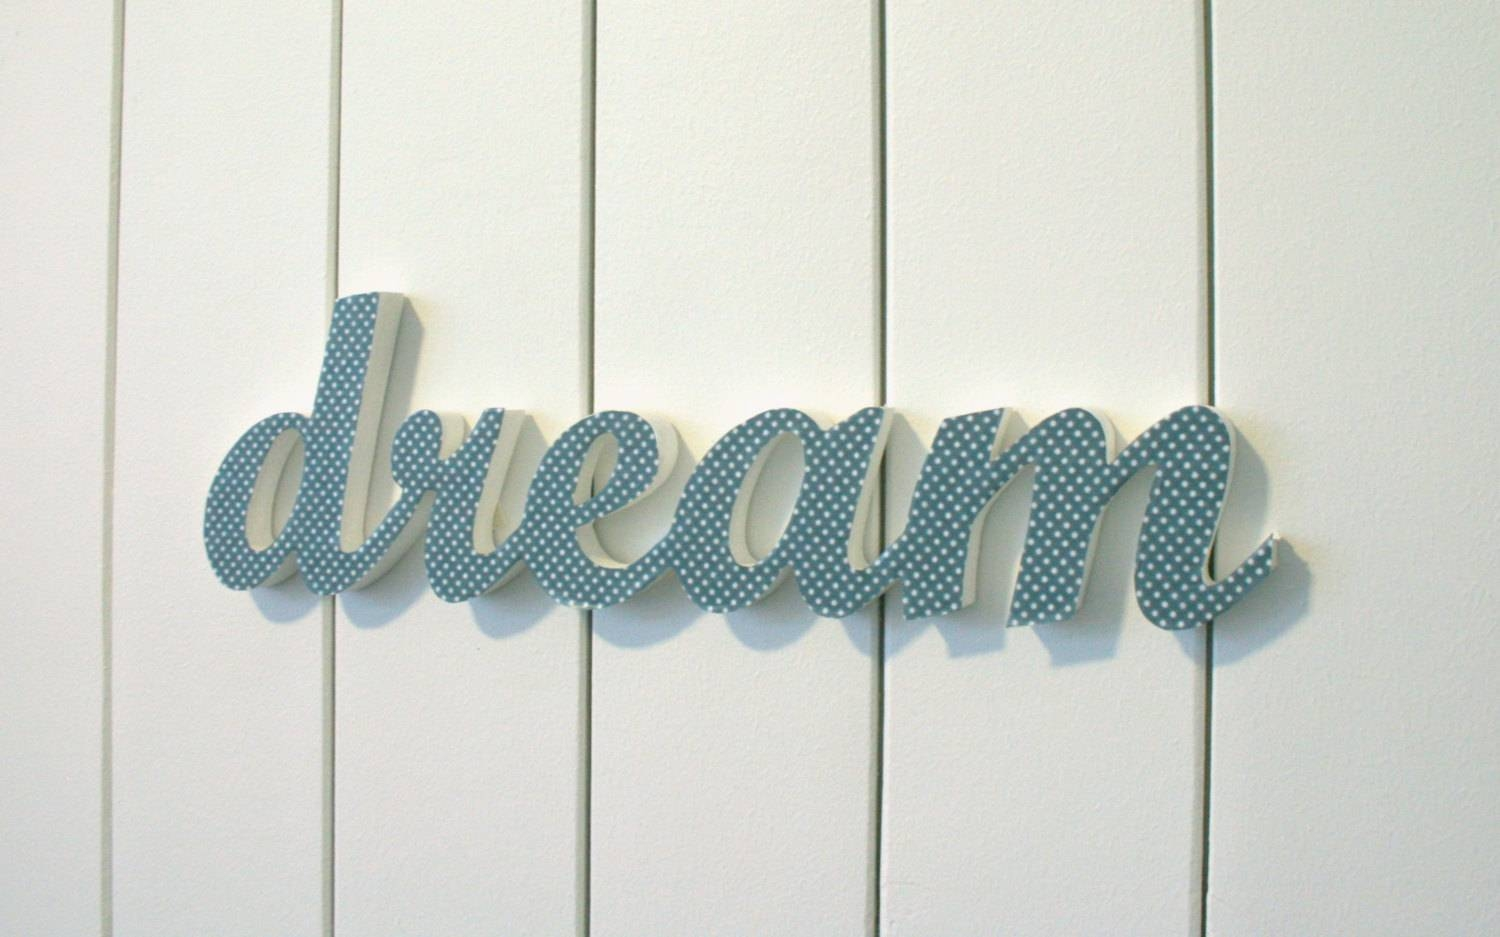 Word Wall Art Wood | Wallartideas Pertaining To Most Up To Date Wooden Word Wall Art (View 17 of 30)